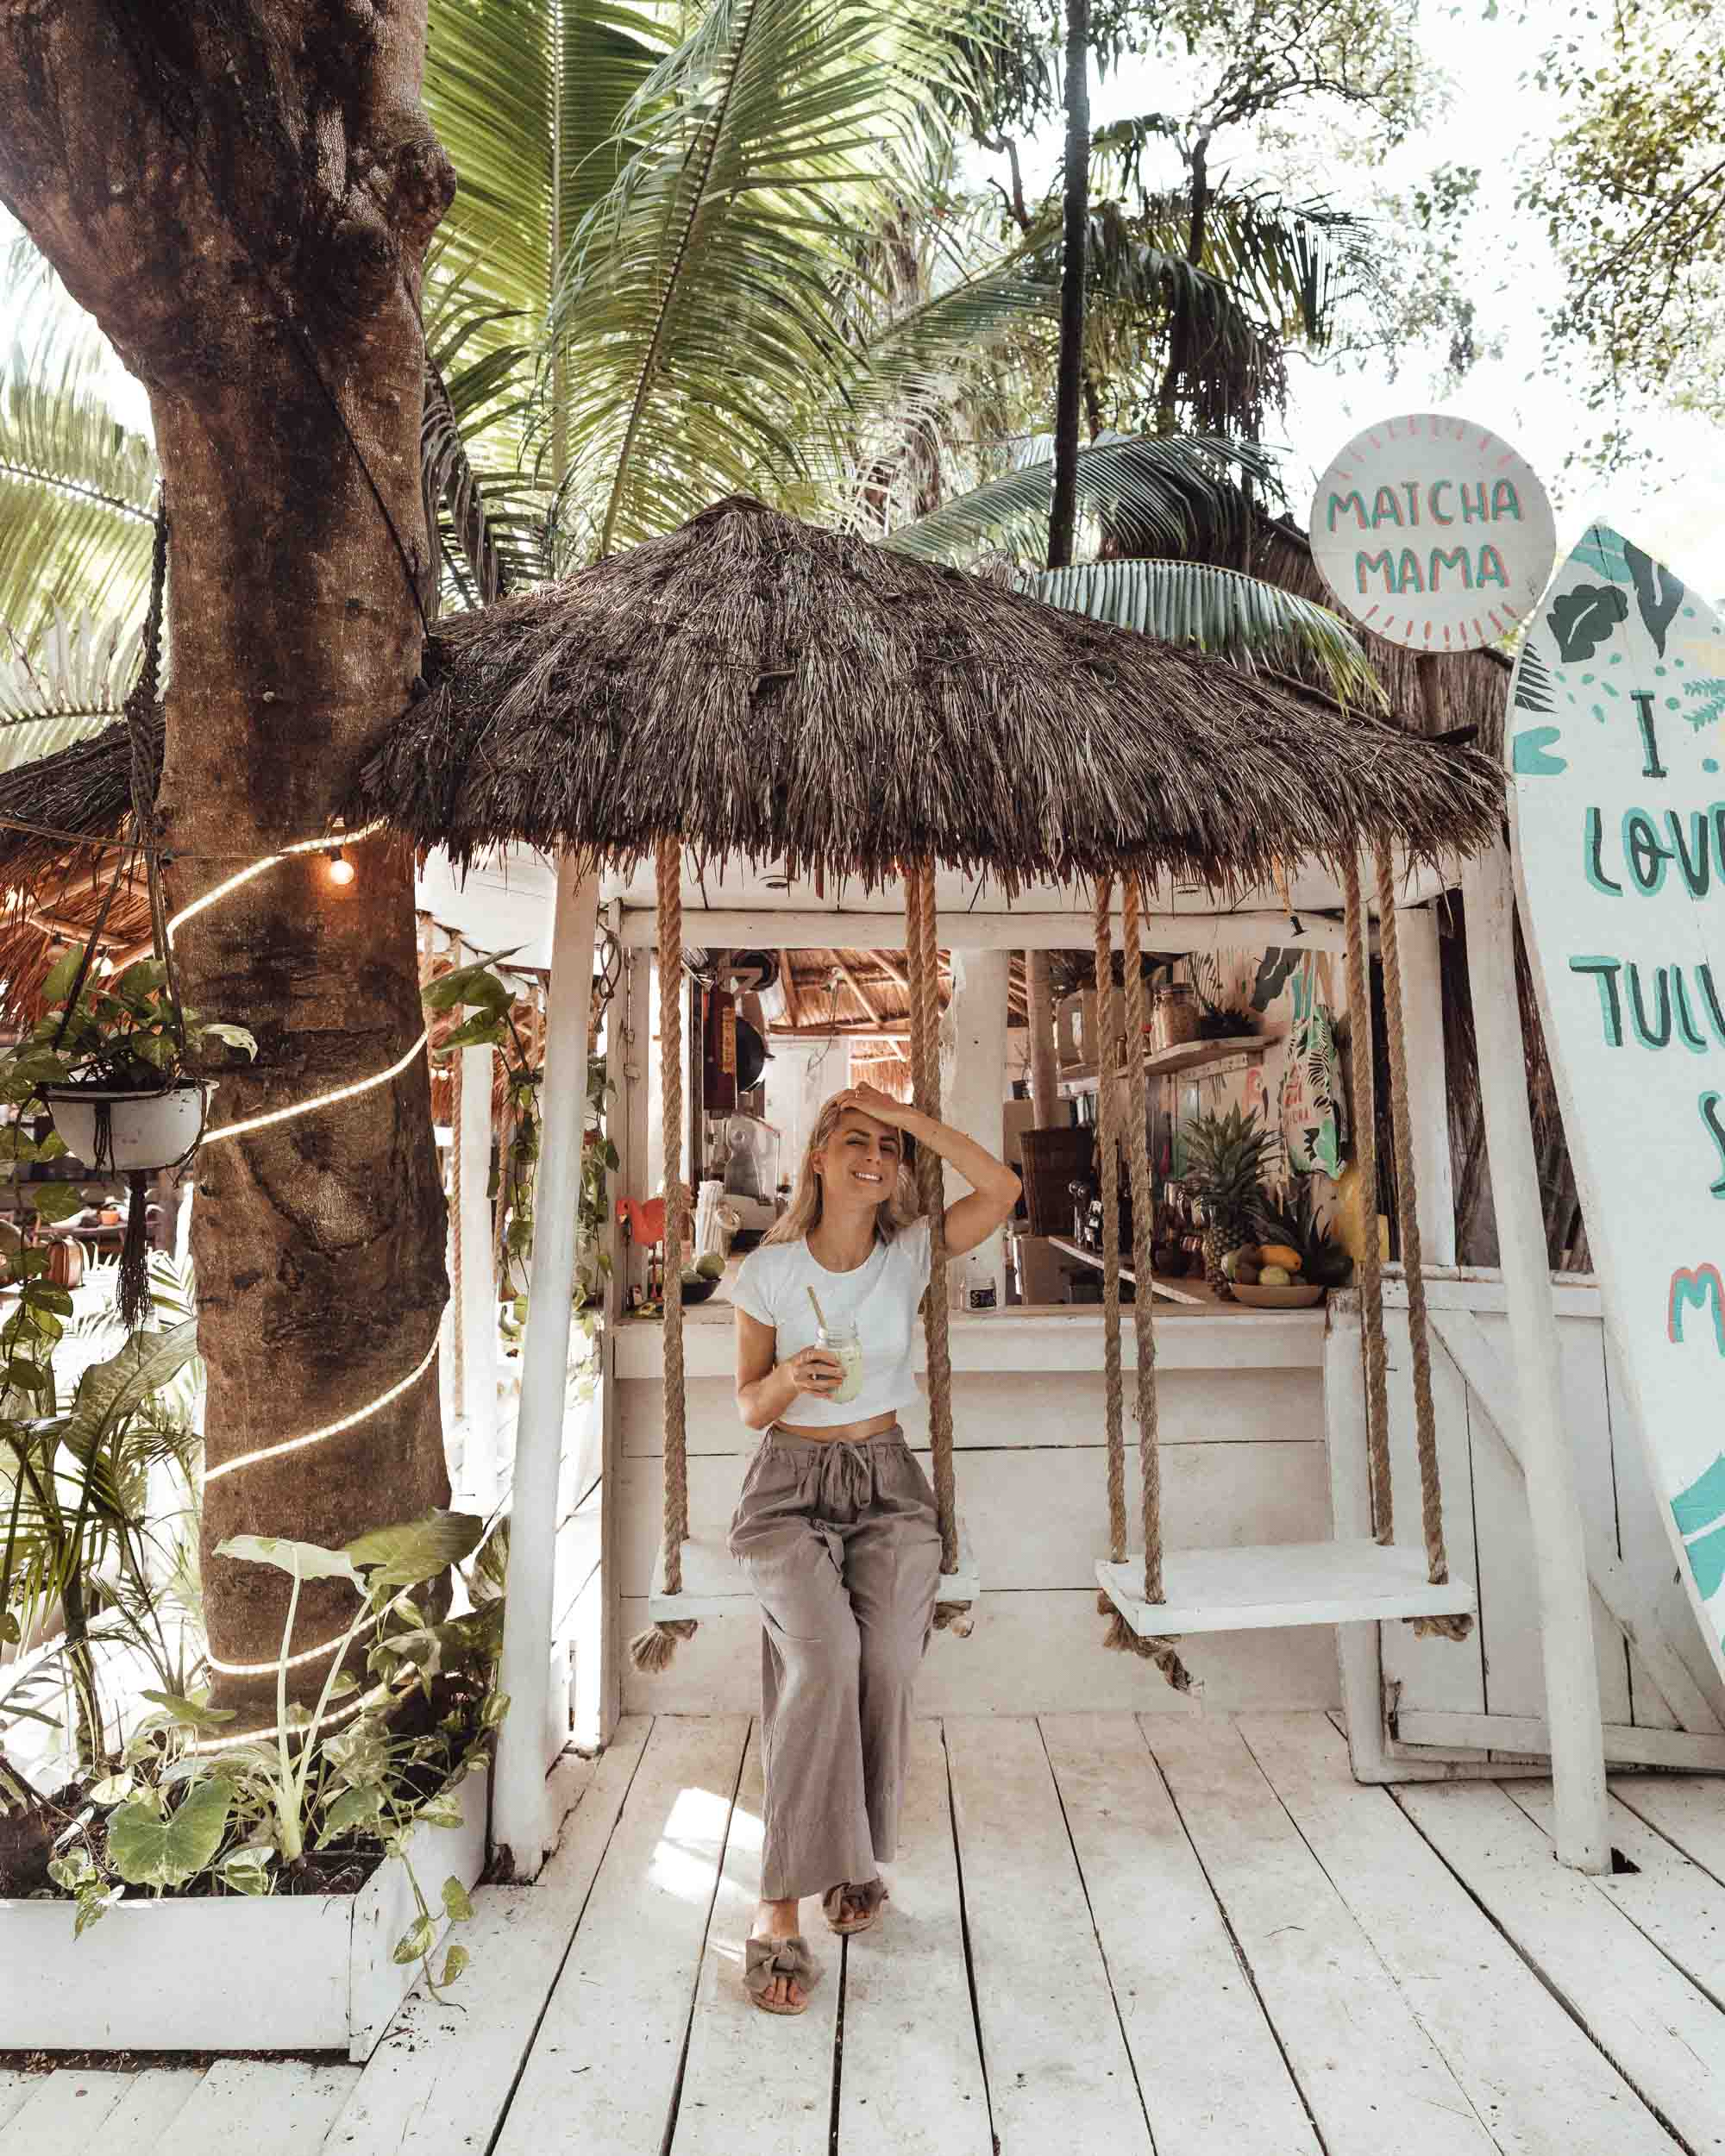 Matcha Mama in Tulum Quintana Roo Mexico via Find Us Lost